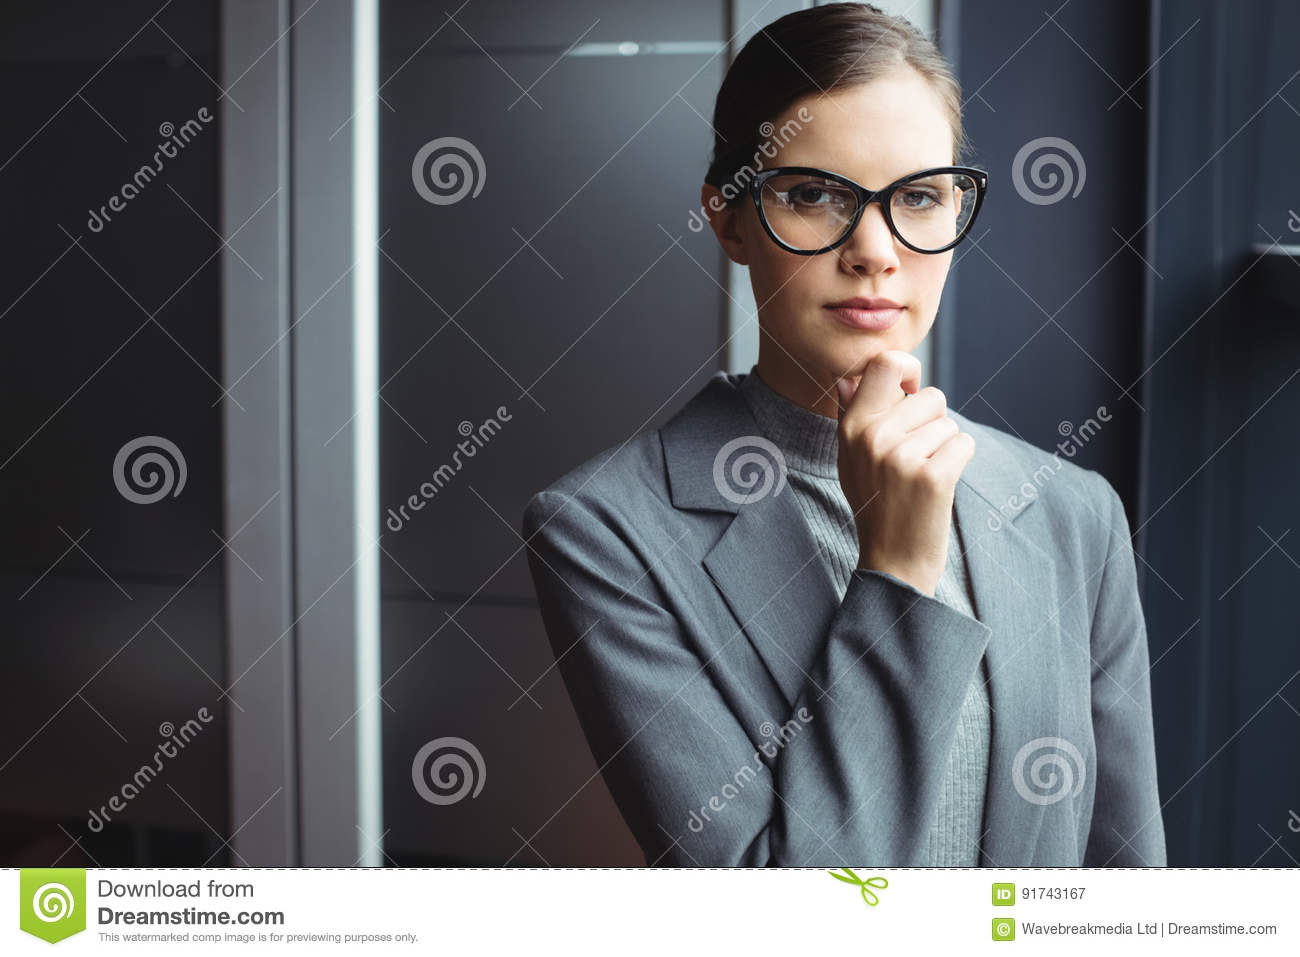 Counselor in glasses with hand on chin